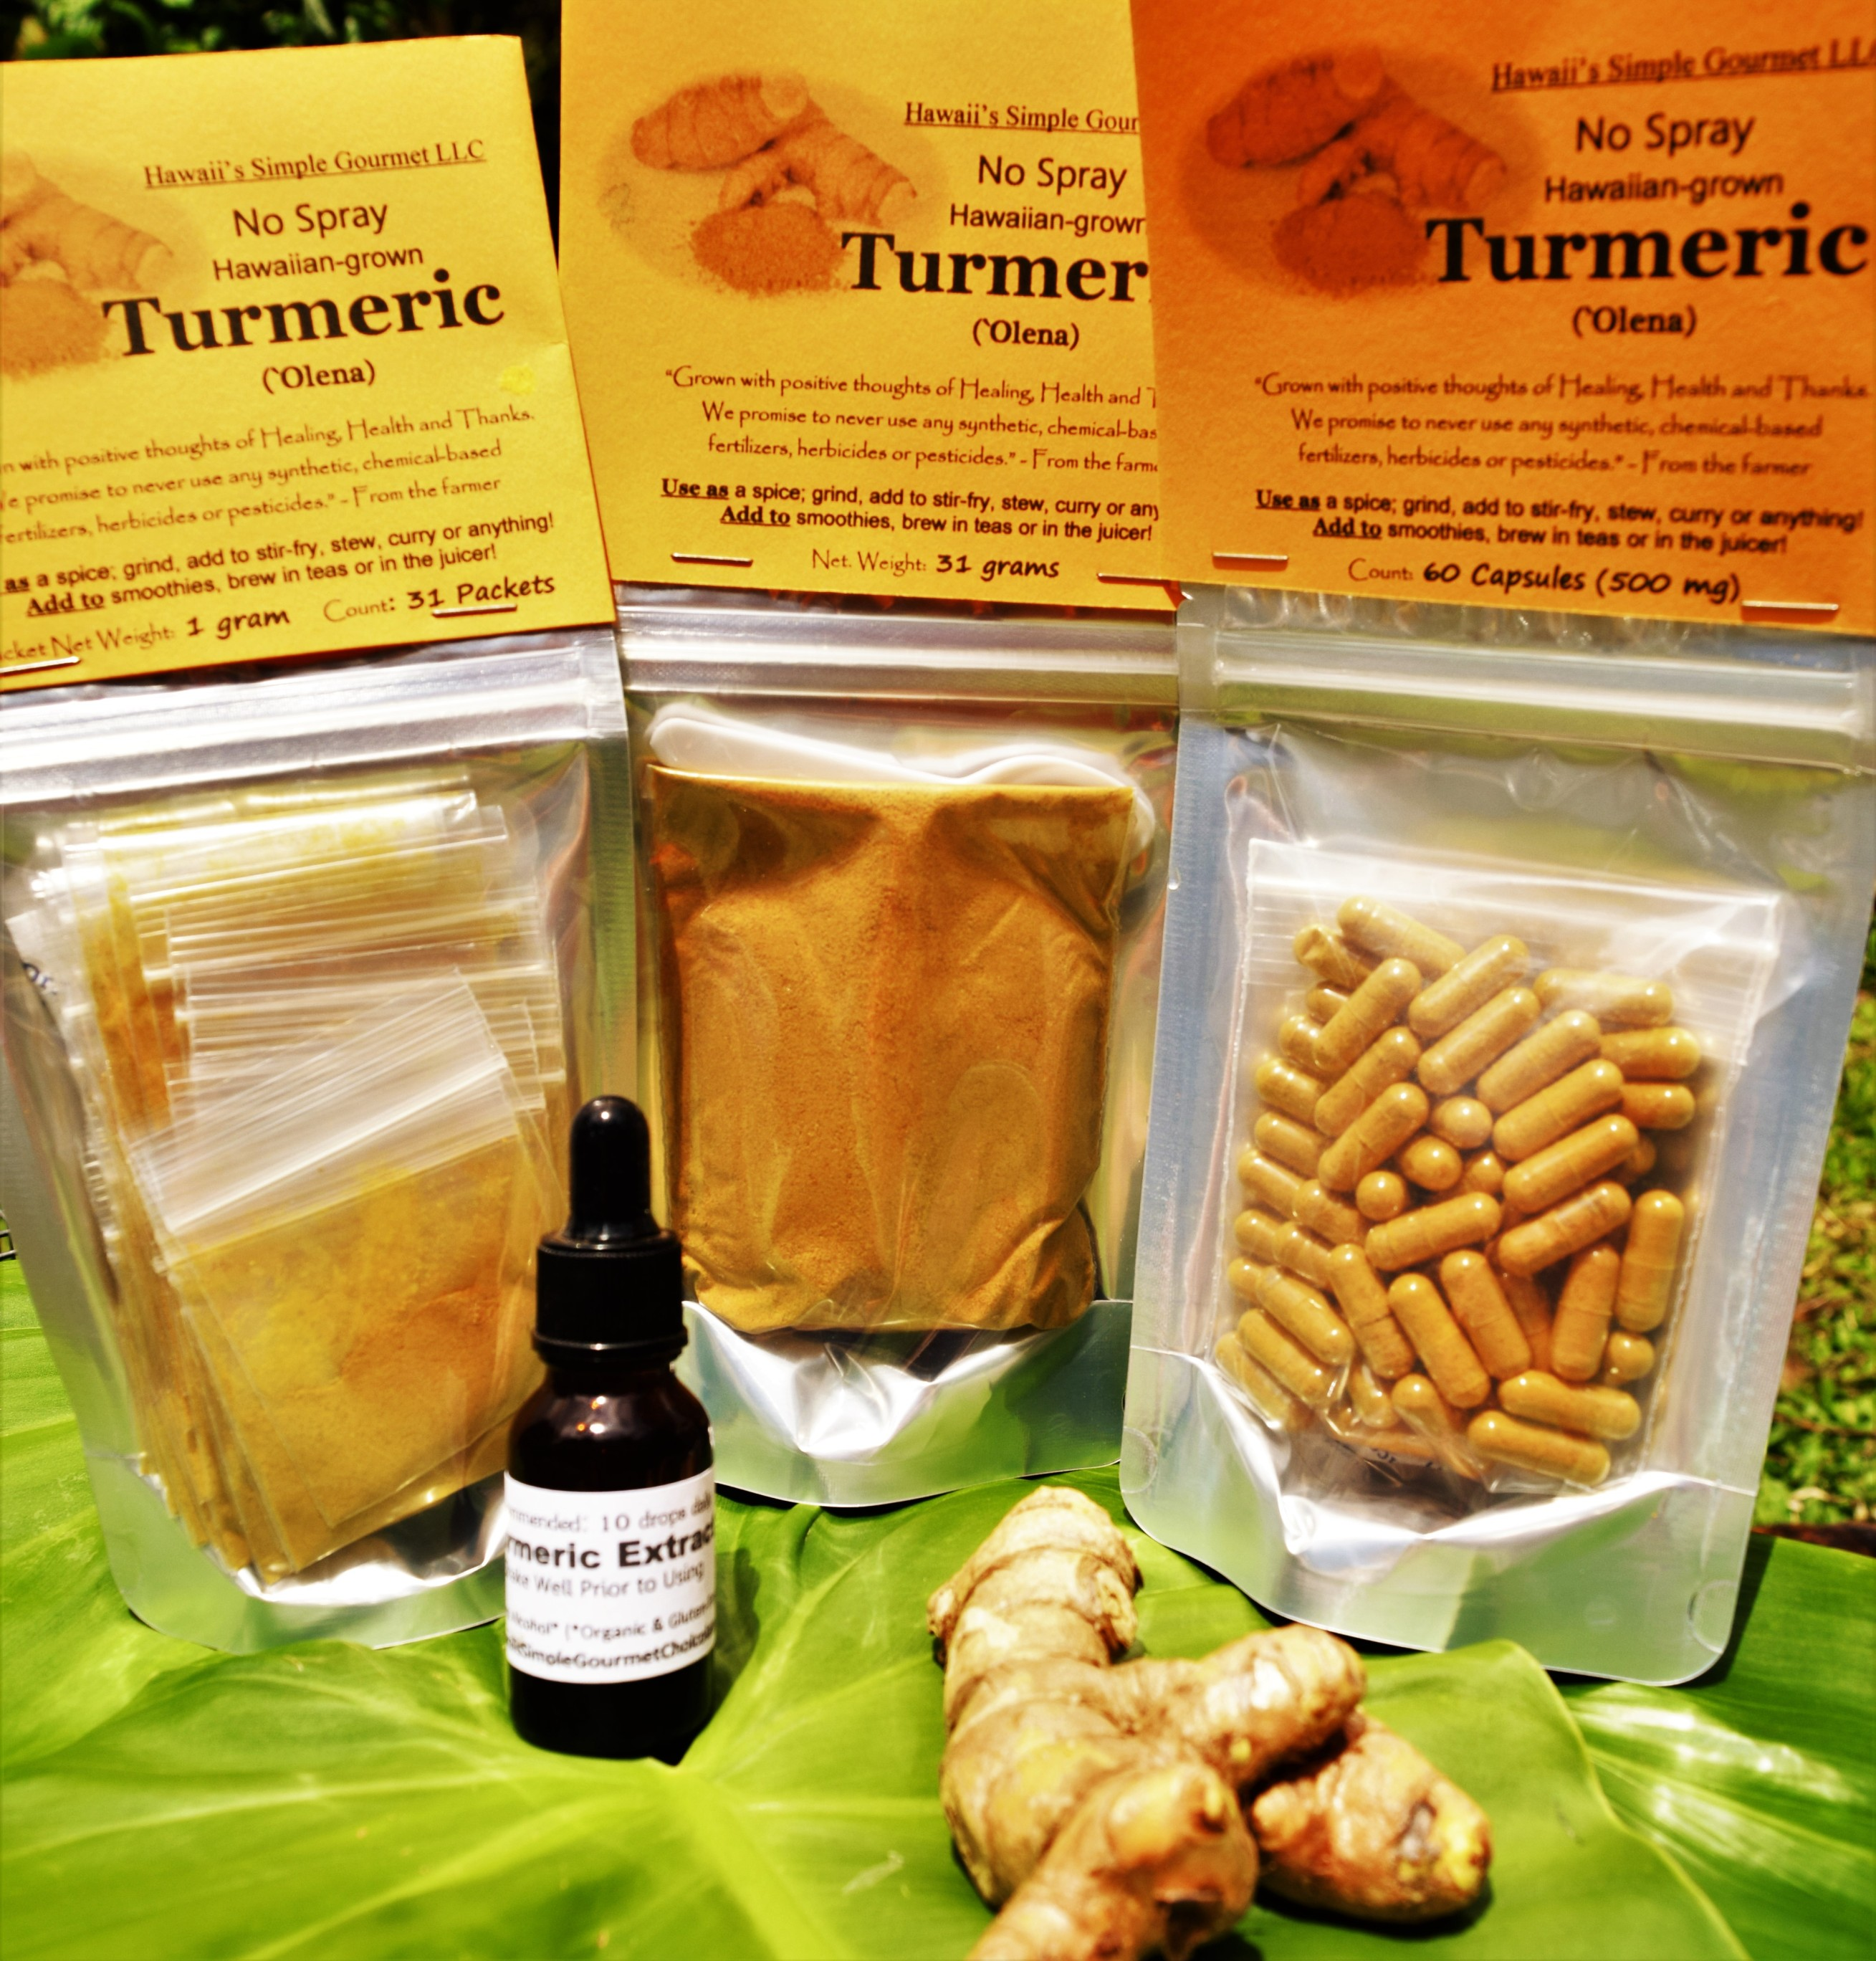 Daily Dose of Turmeric